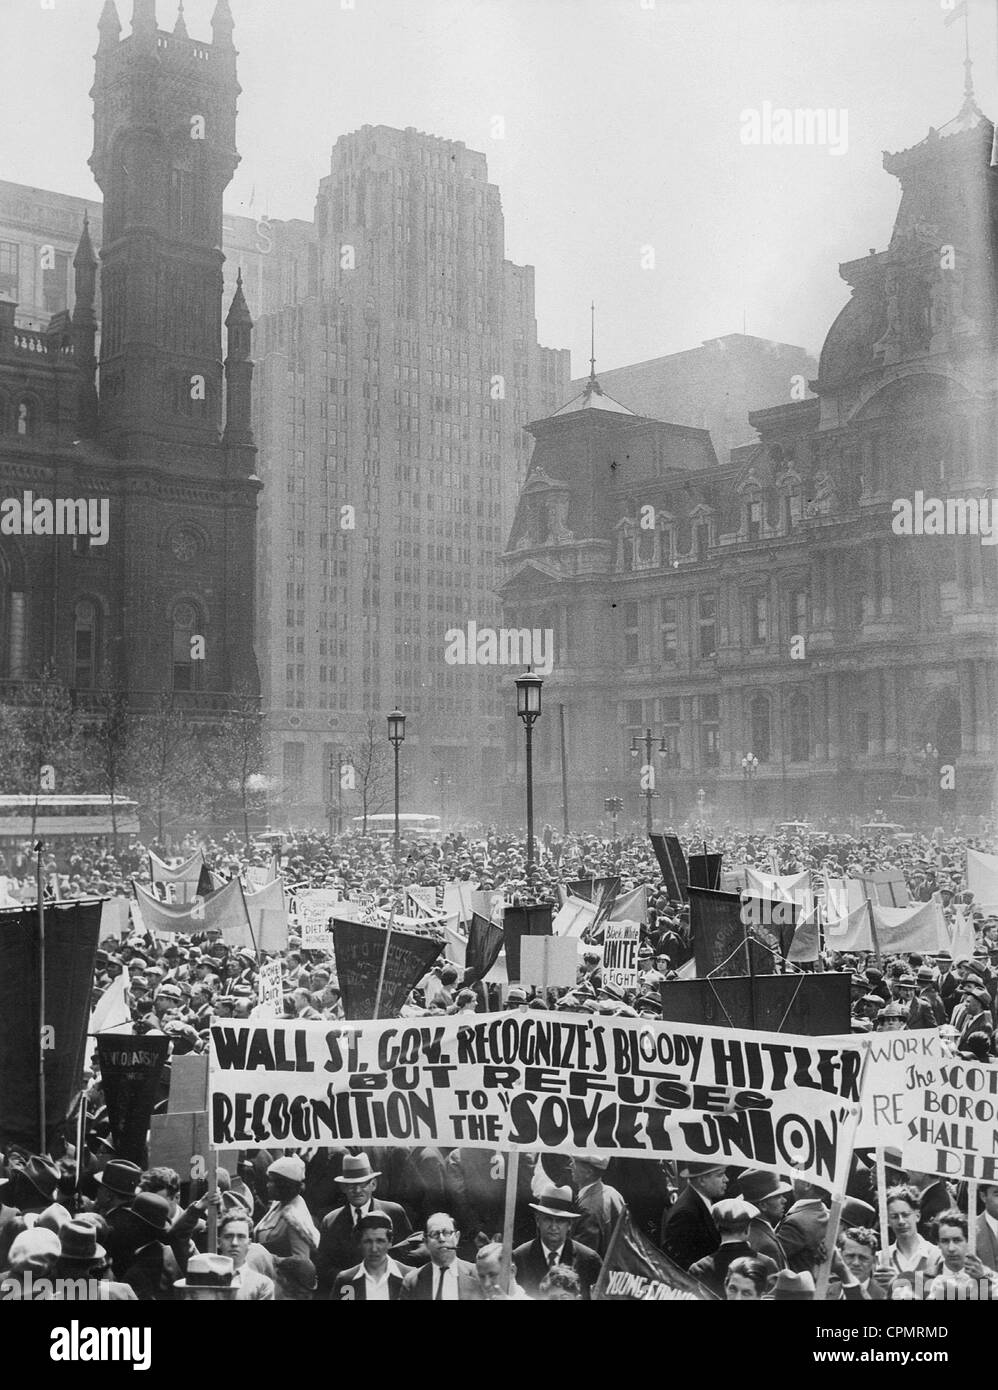 May Day demonstration of the Communists in Philadelphia, 1933 - Stock Image